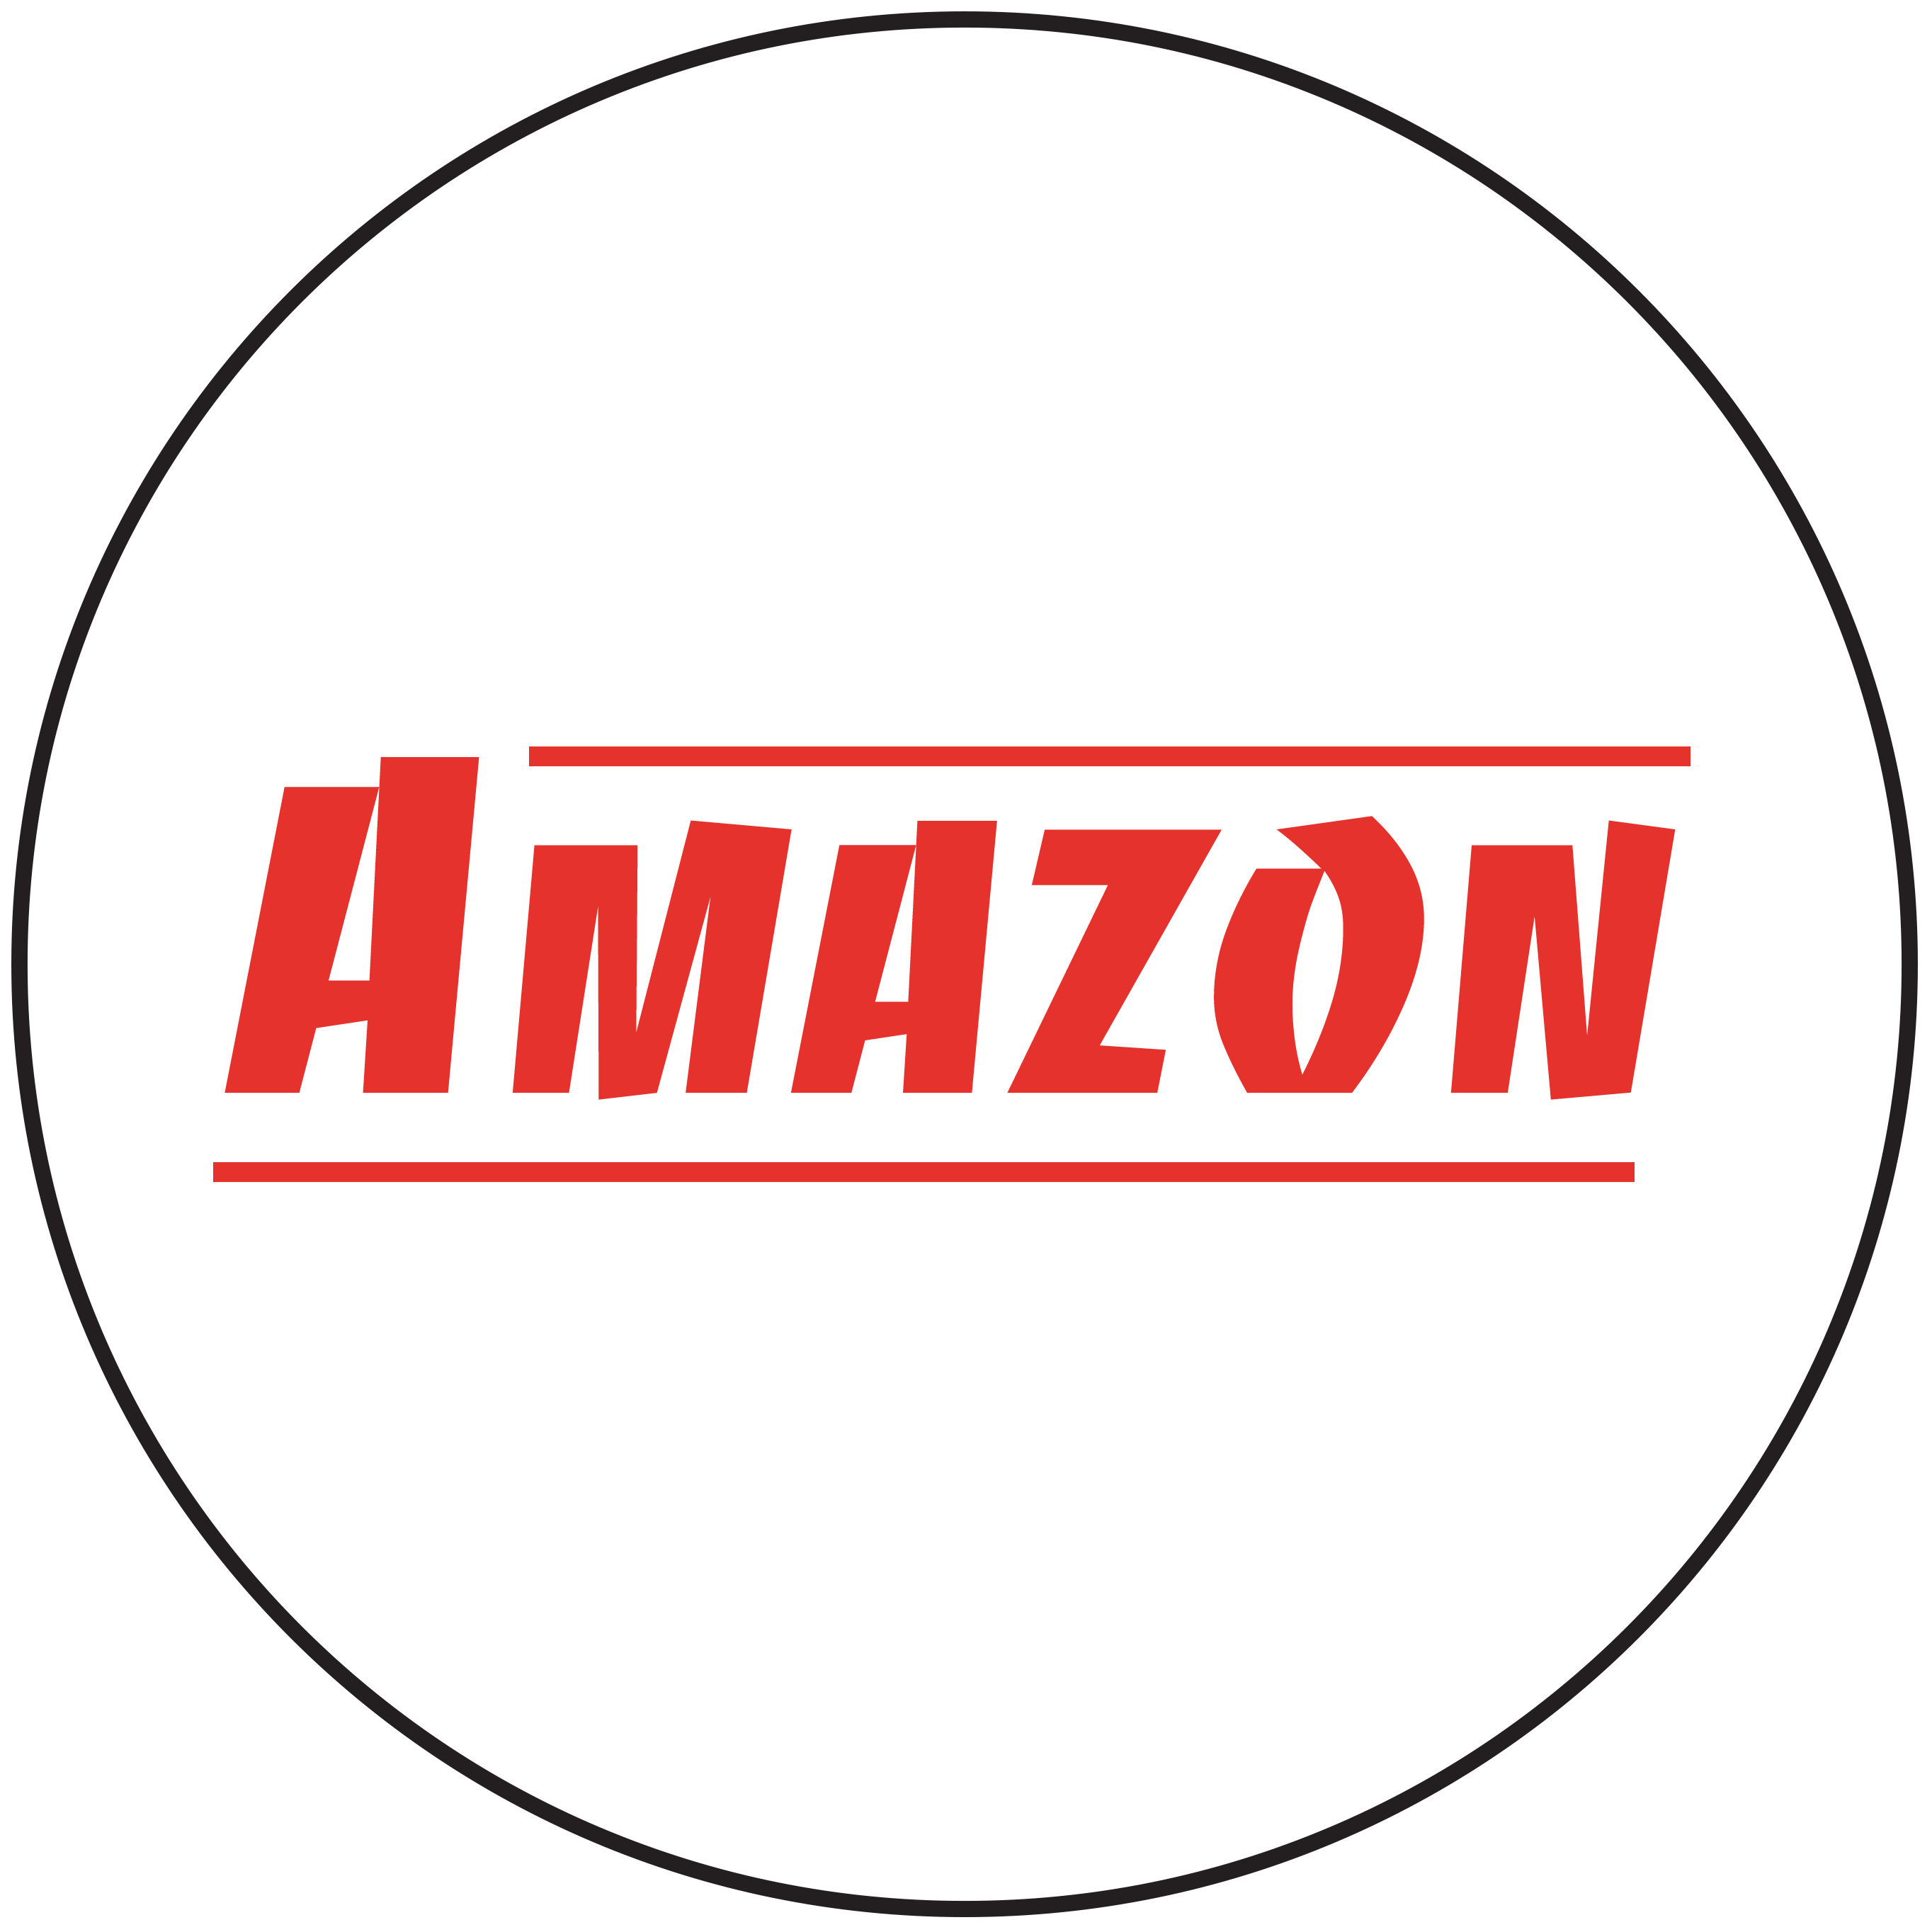 Amazon Filters and Britvic Strengthen Working Partnership